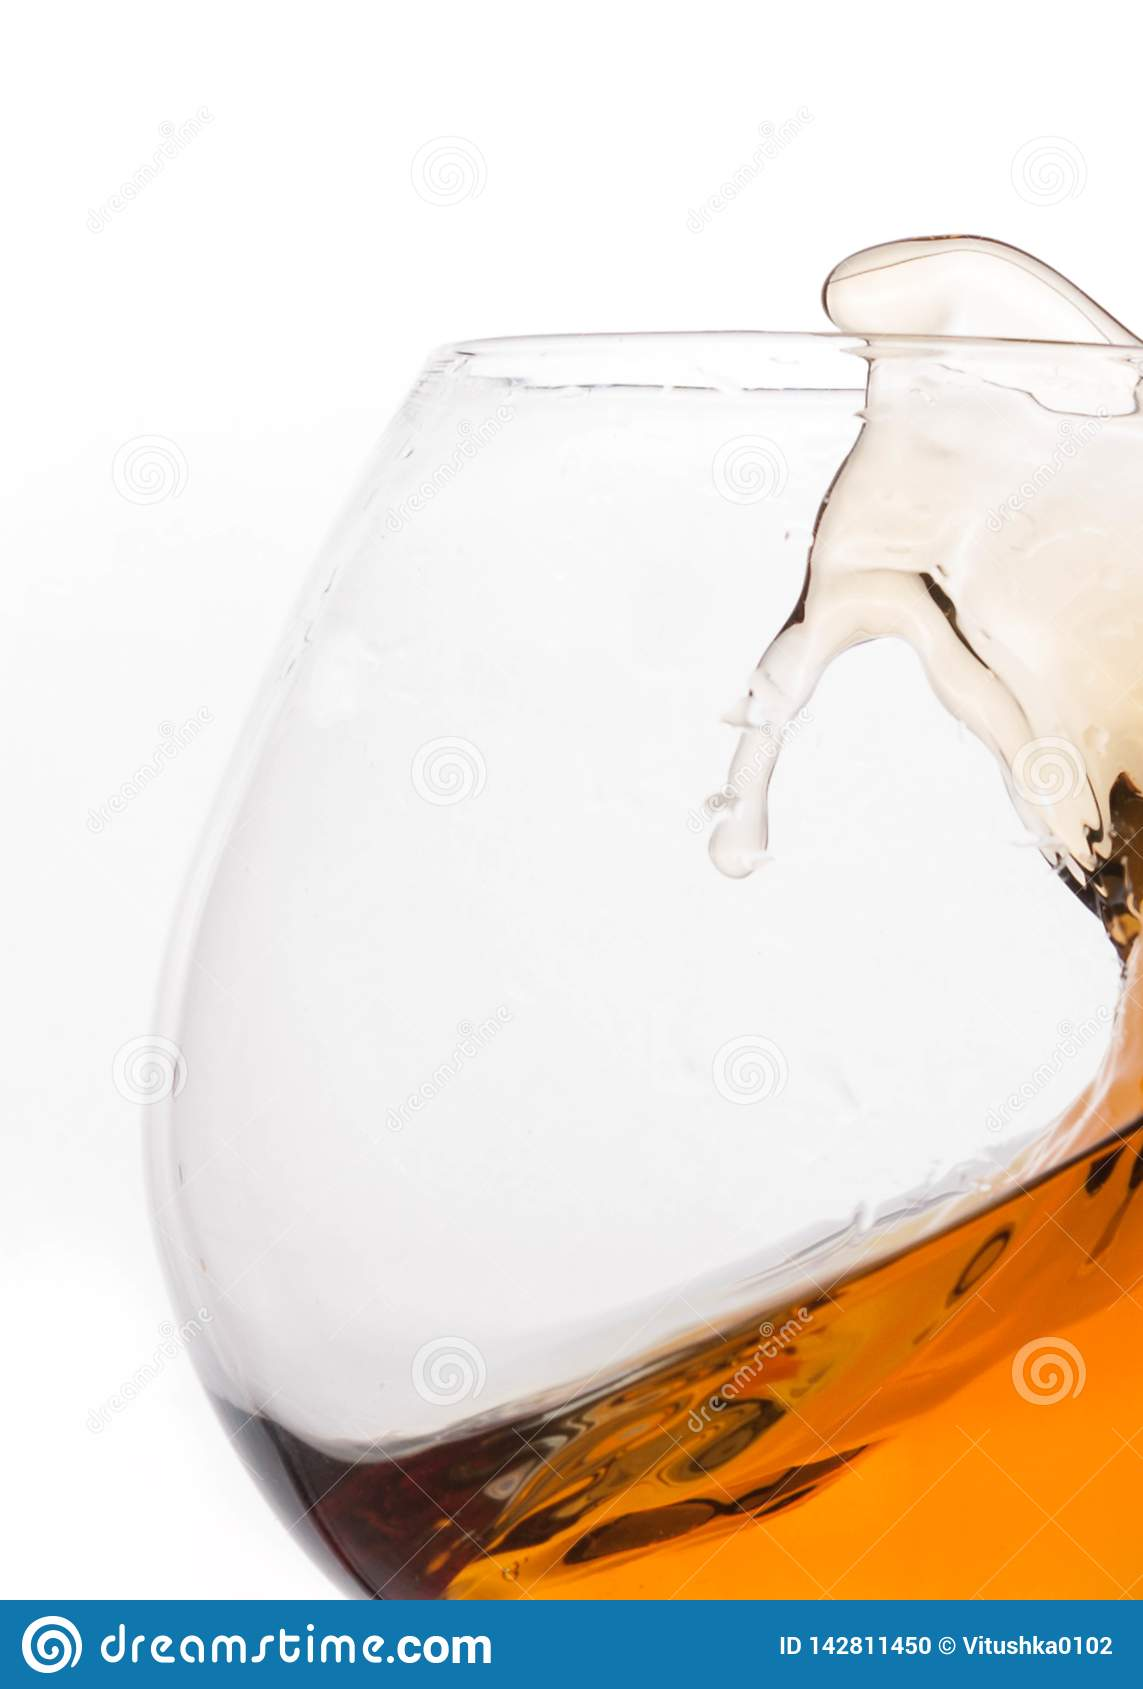 Splash of brown whiskey in transparent glass with reflection